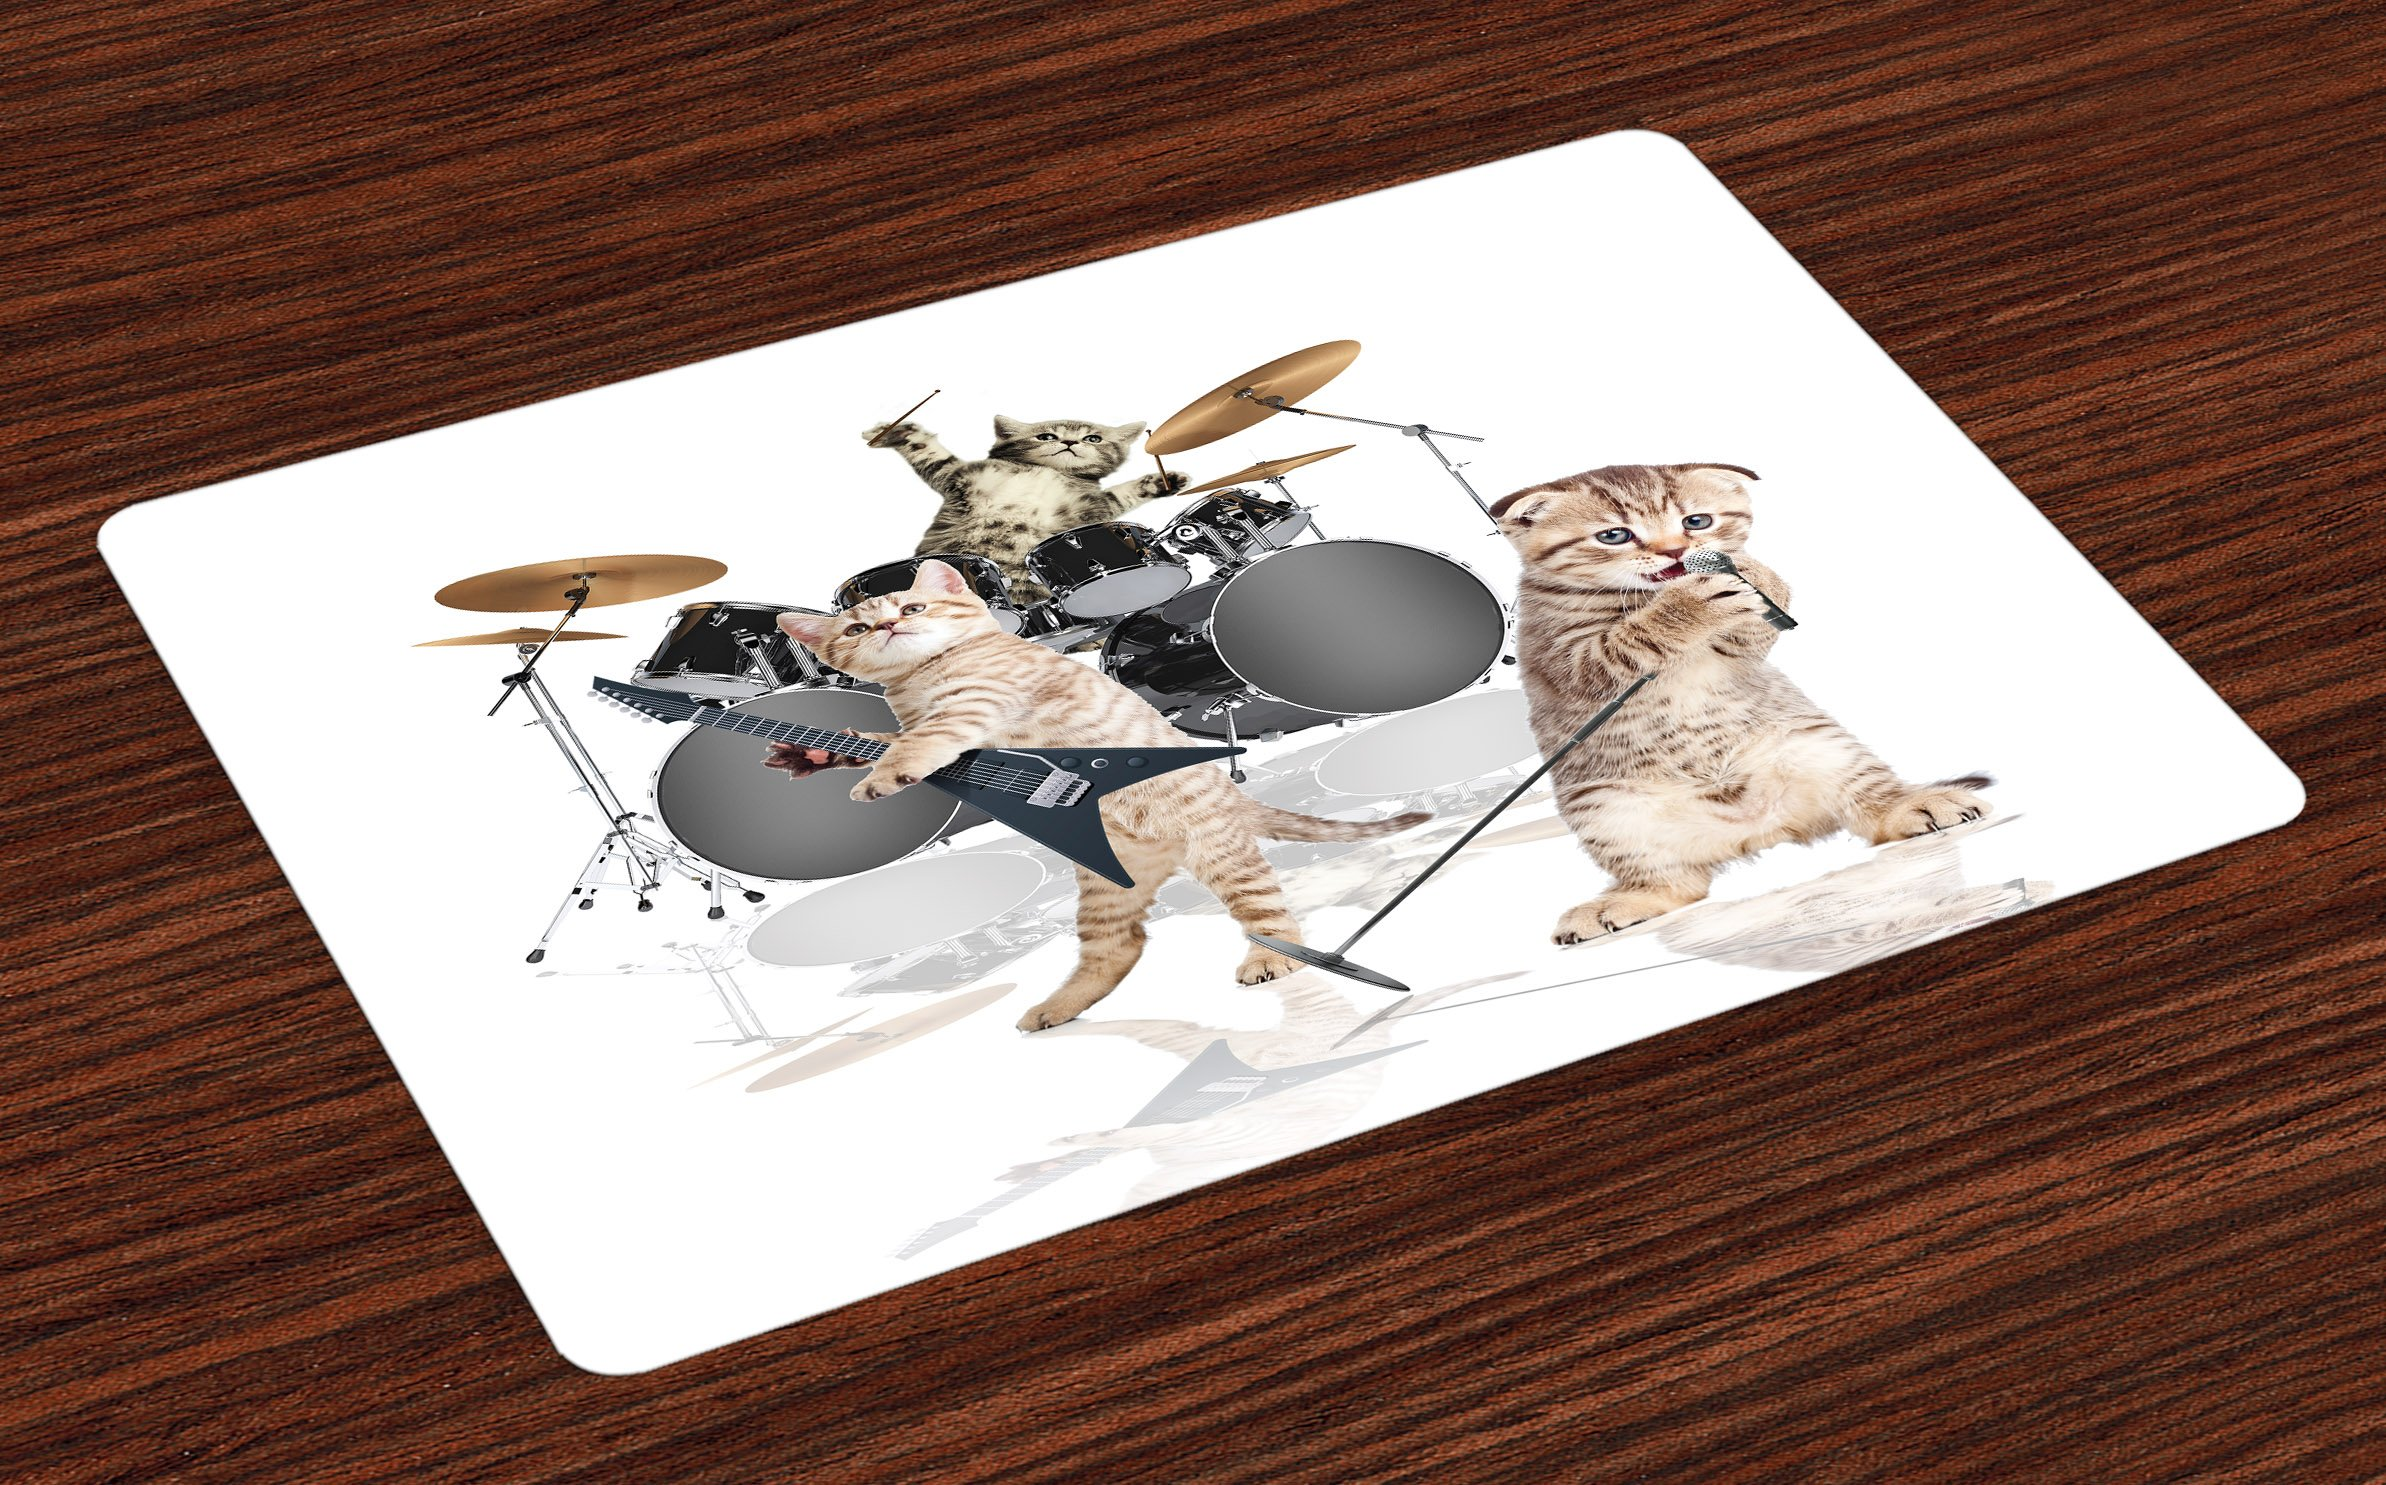 Ambesonne Animal Place Mats Set of 4, Cool Fancy Hard Cute Rocker Band of Kittens with Singer Guitarist Cats Artwork Print, Washable Fabric Placemats for Dining Room Kitchen Table Decor, Multicolor